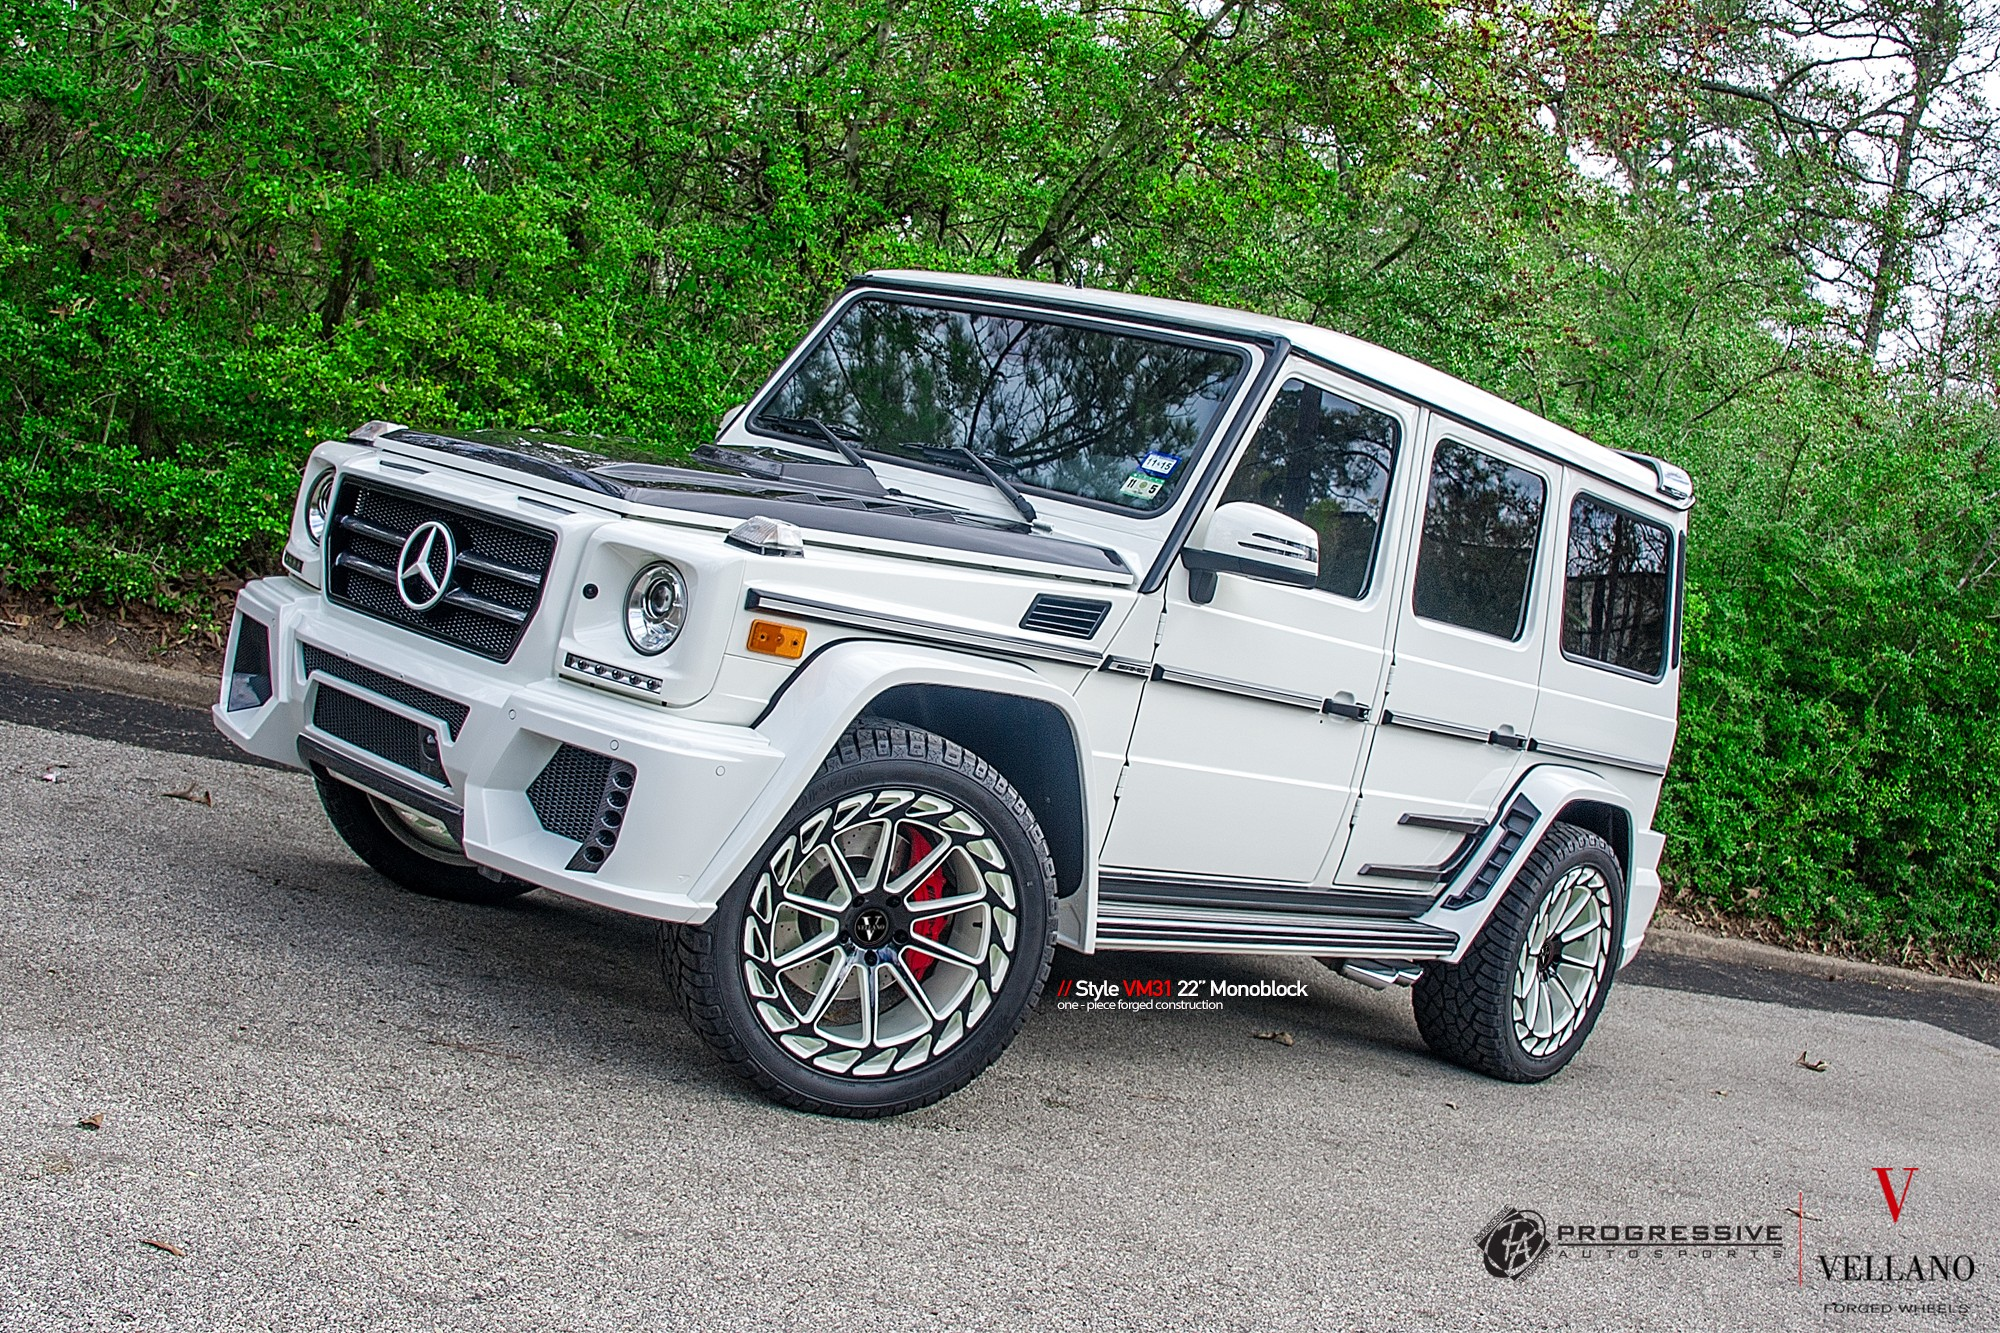 Mercedes benz g63 amg 6x6 for sale autoevolution for Mercedes benz g63 amg for sale